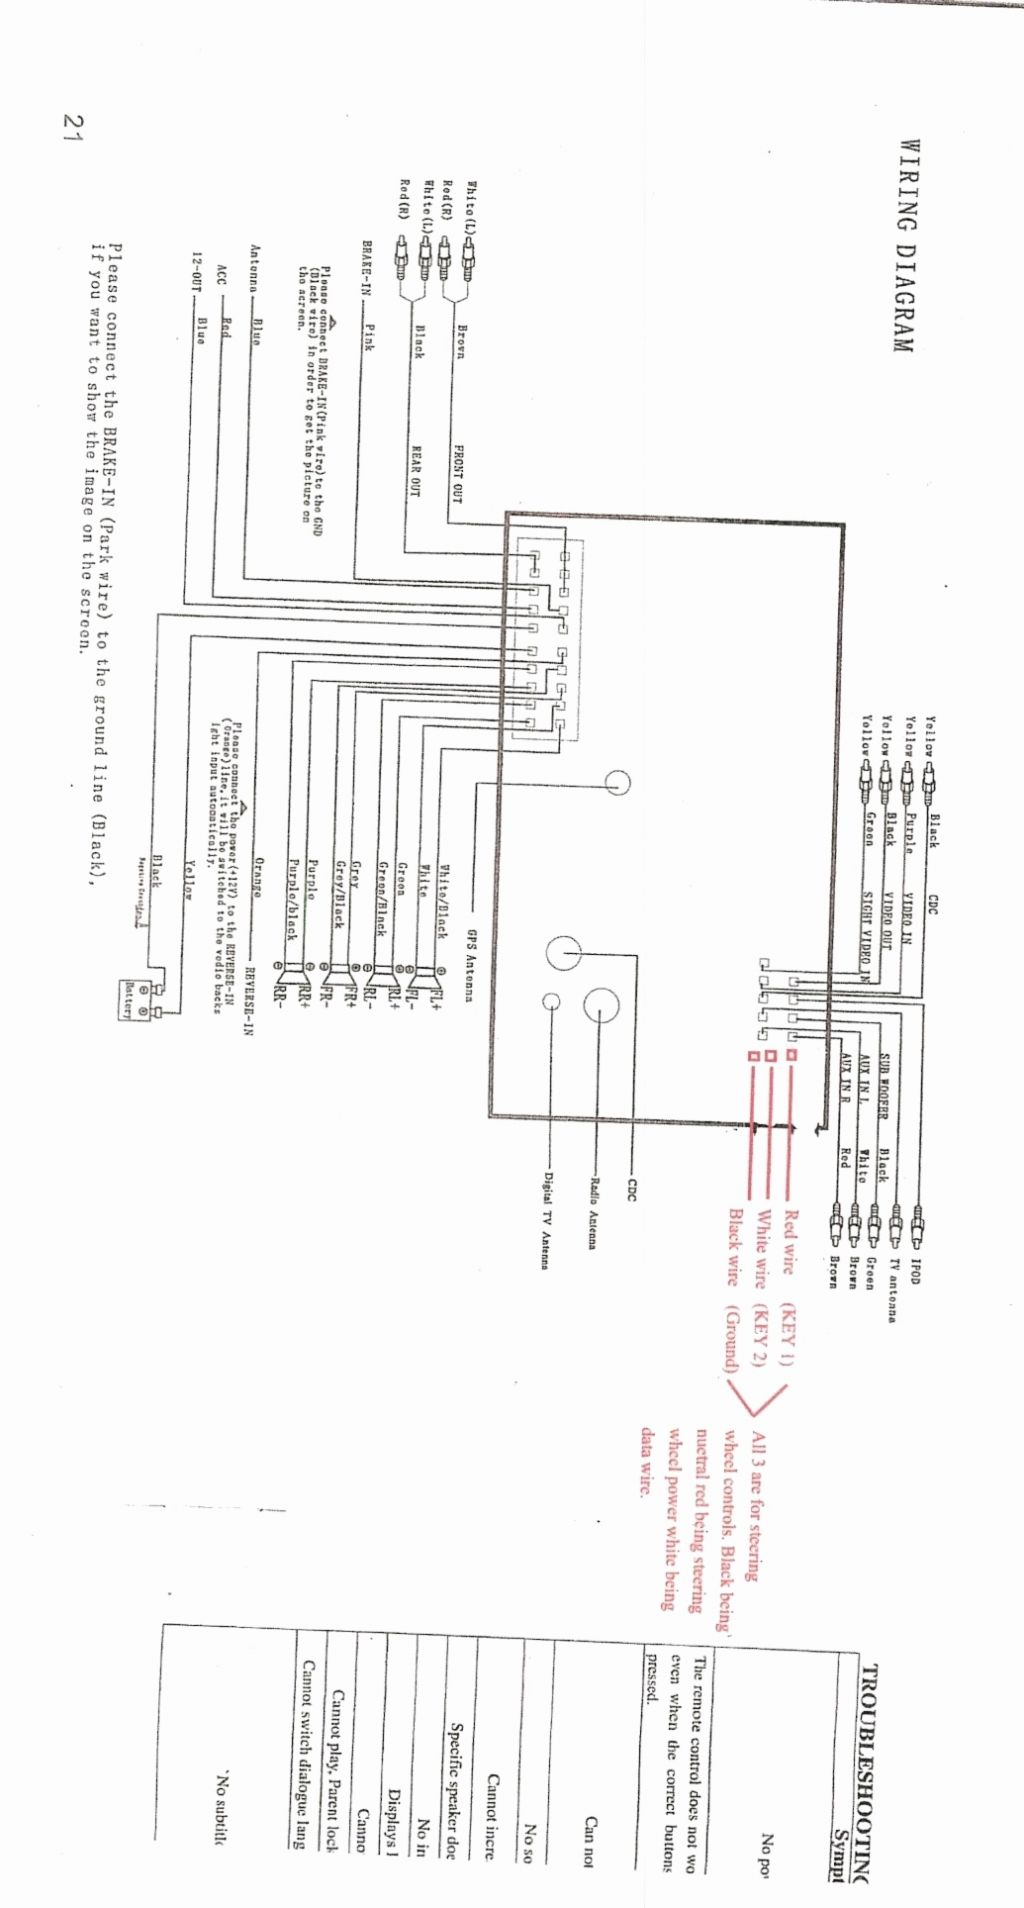 axxess gmos lan 02 wiring diagram Collection-Axxess Gmos 04 Wiring Diagram  Beautiful Awesome Gmos